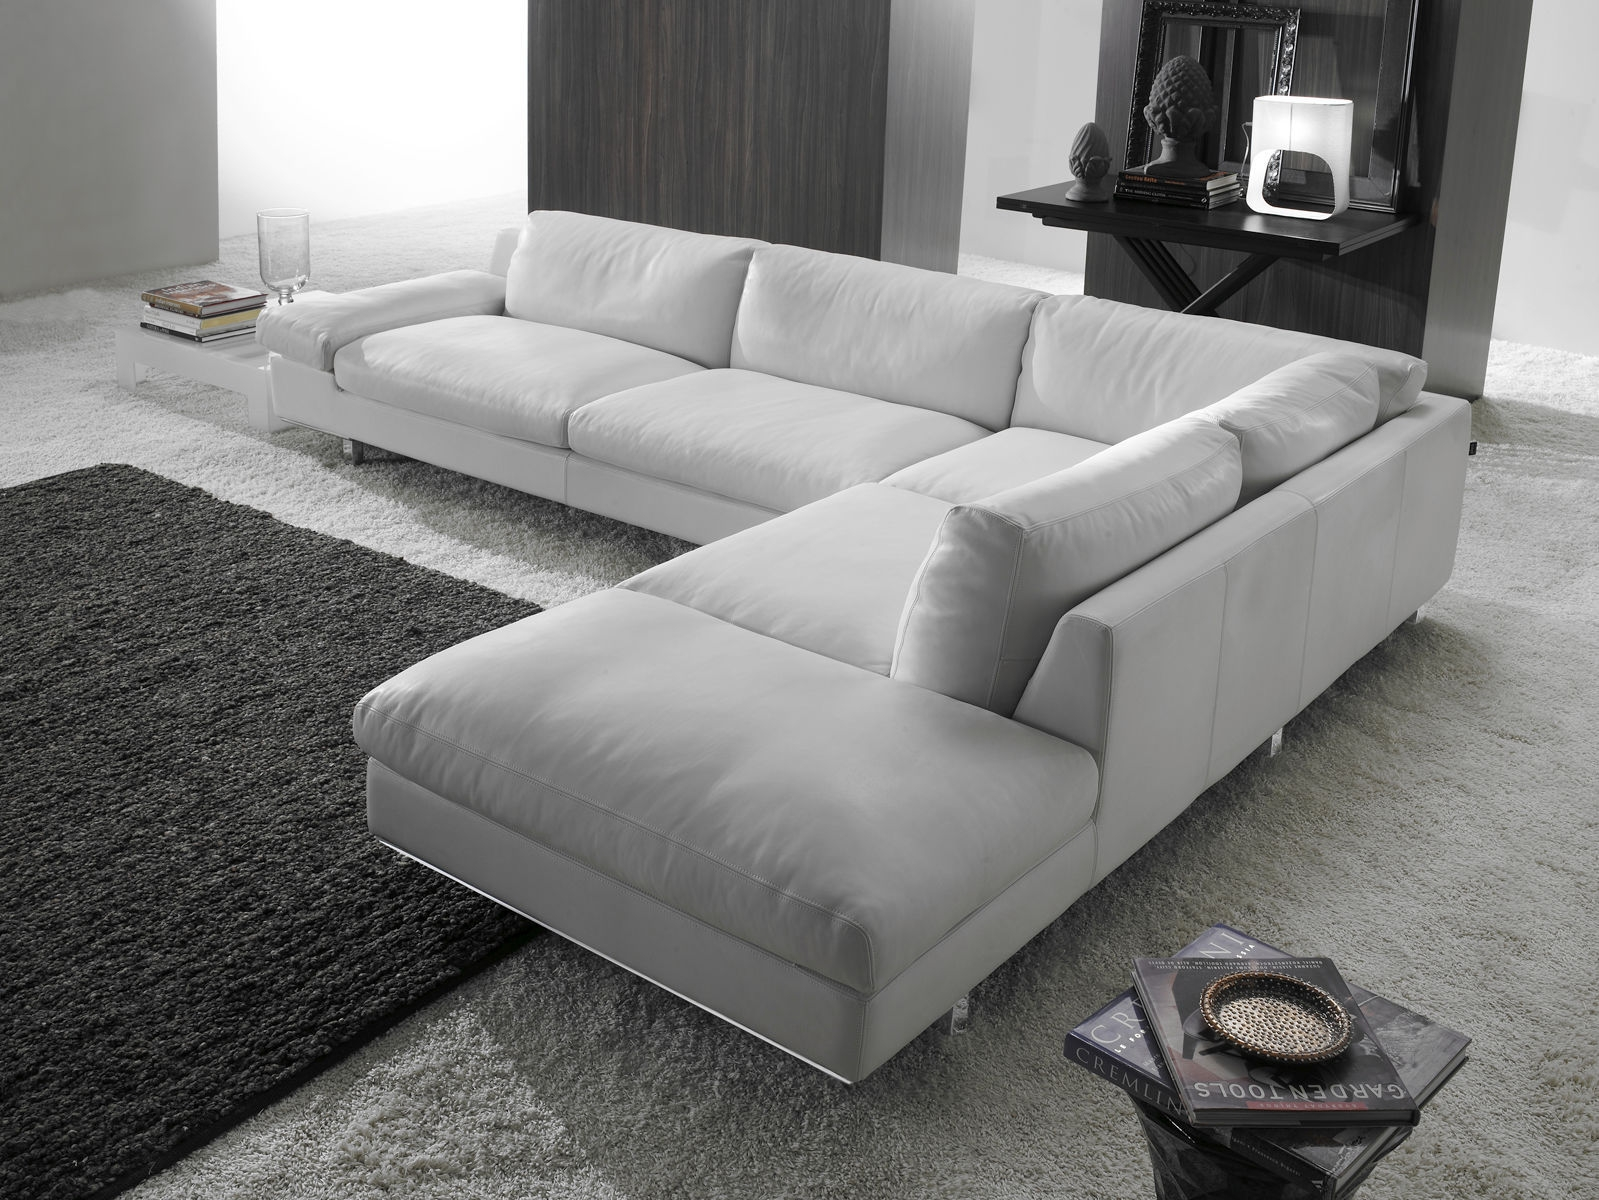 Corner Sofa Contemporary Leather 4 Seater Paran Regarding 4 Seater Couch (Image 5 of 15)